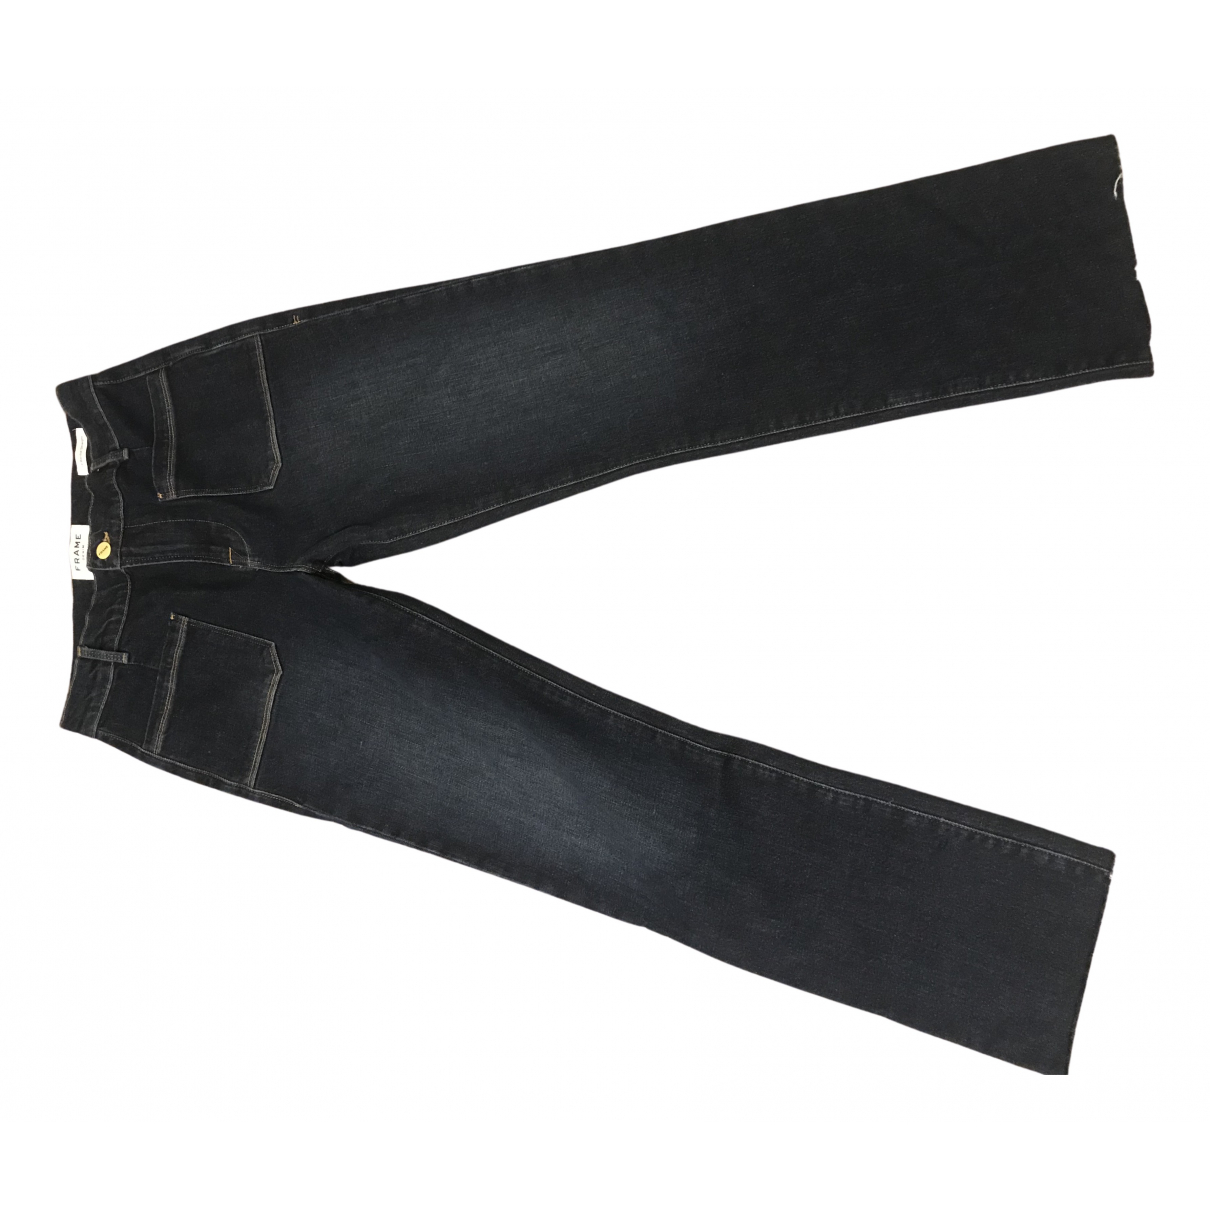 Frame Denim N Blue Denim - Jeans Jeans for Women 26 US